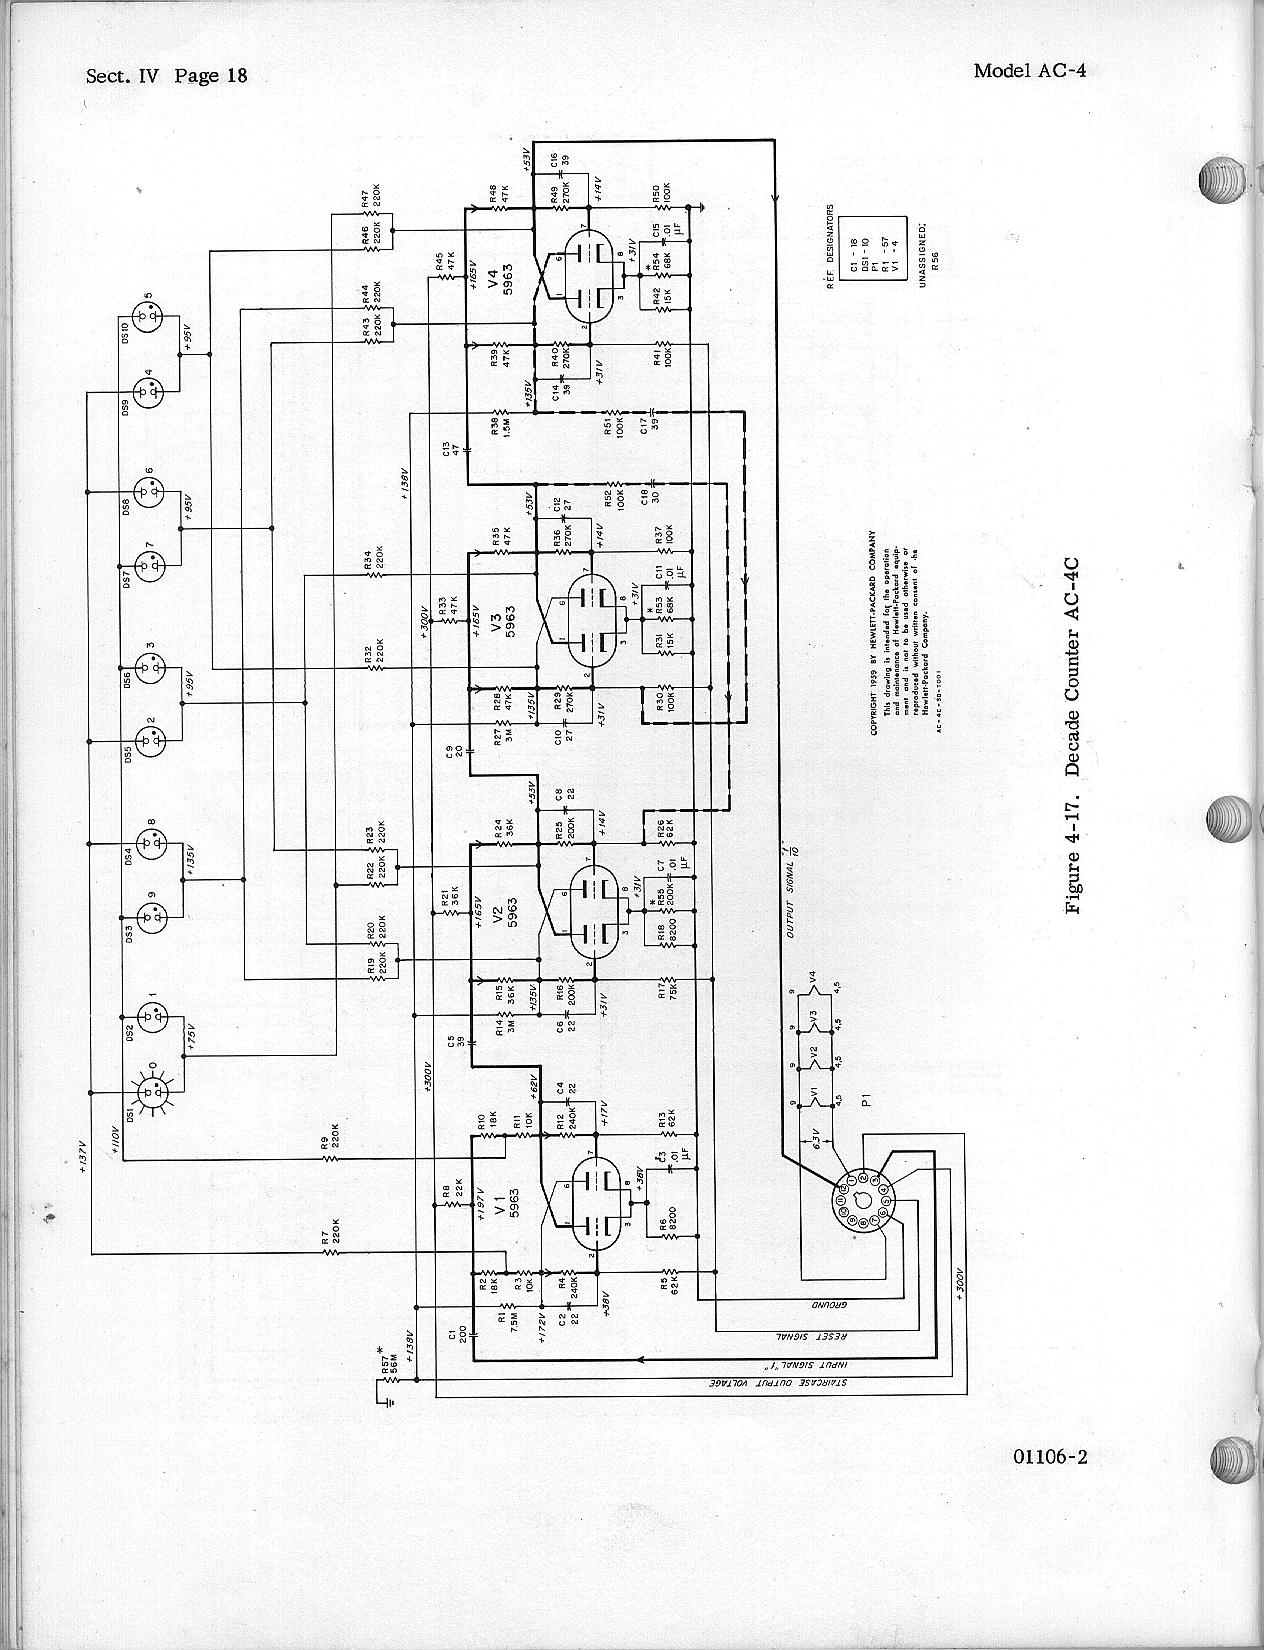 bargman plug wiring diagram with Hewlett Packard Wiring Diagram on Wiring Diagram For Breakaway Switch besides 297308012871089888 additionally Hamer Wiring Diagram Wiring Diagrams besides 2014 Ford F350 Trailor Hitch Diagram furthermore 7 Way Trailer End Connector Question 57709.